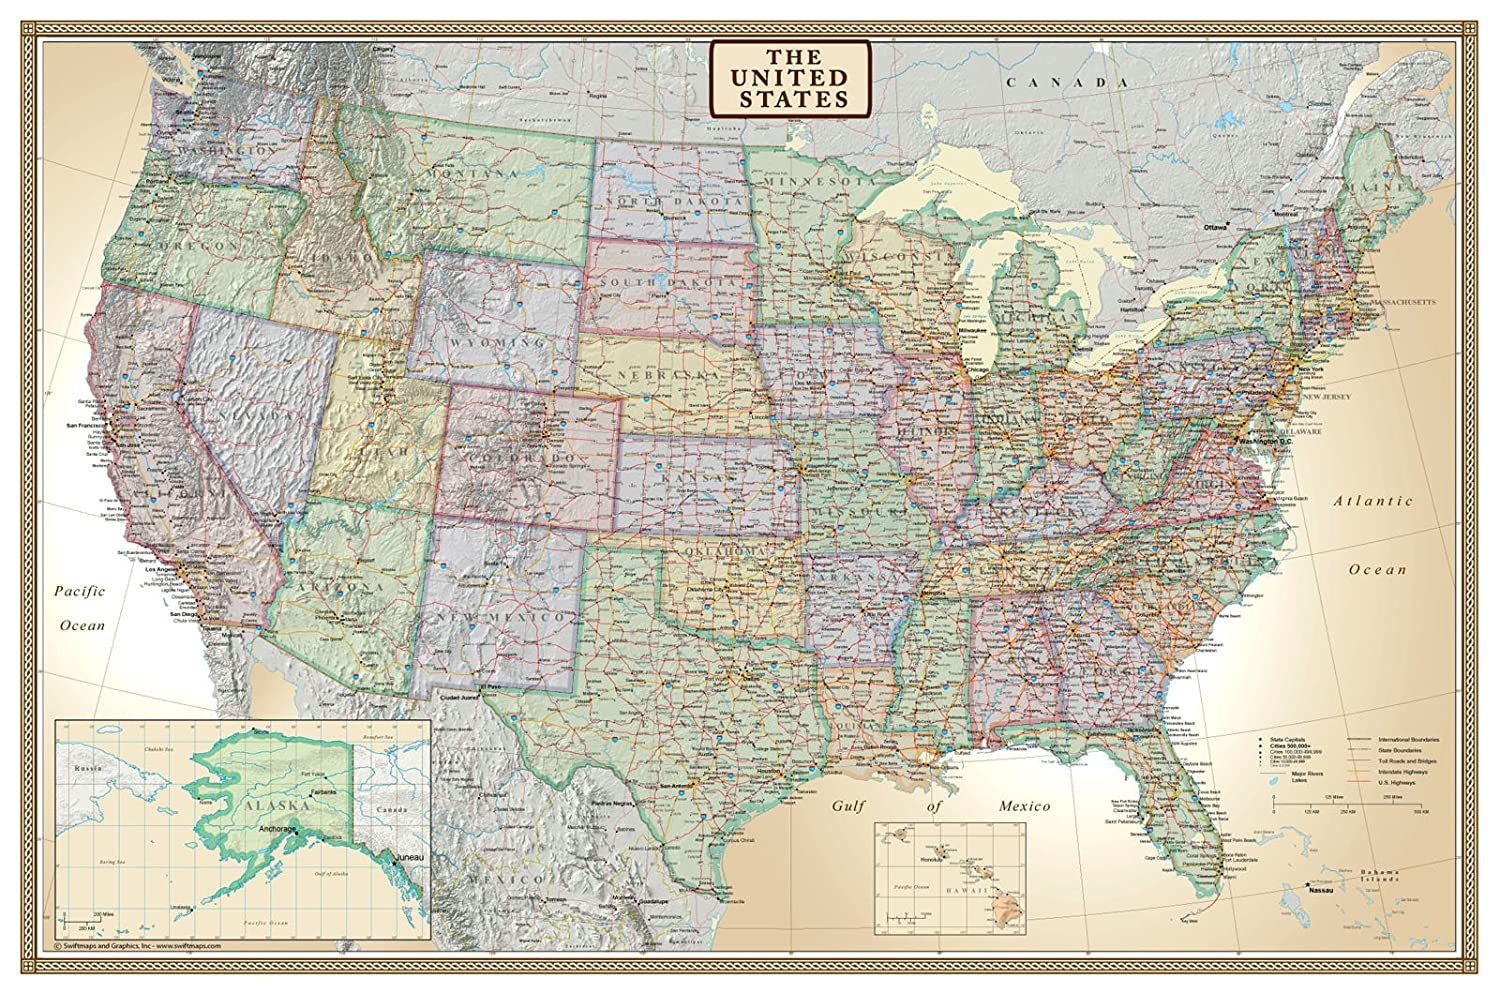 Amazoncom X United States USA US Executive Wall Map Poster - States map of the united states